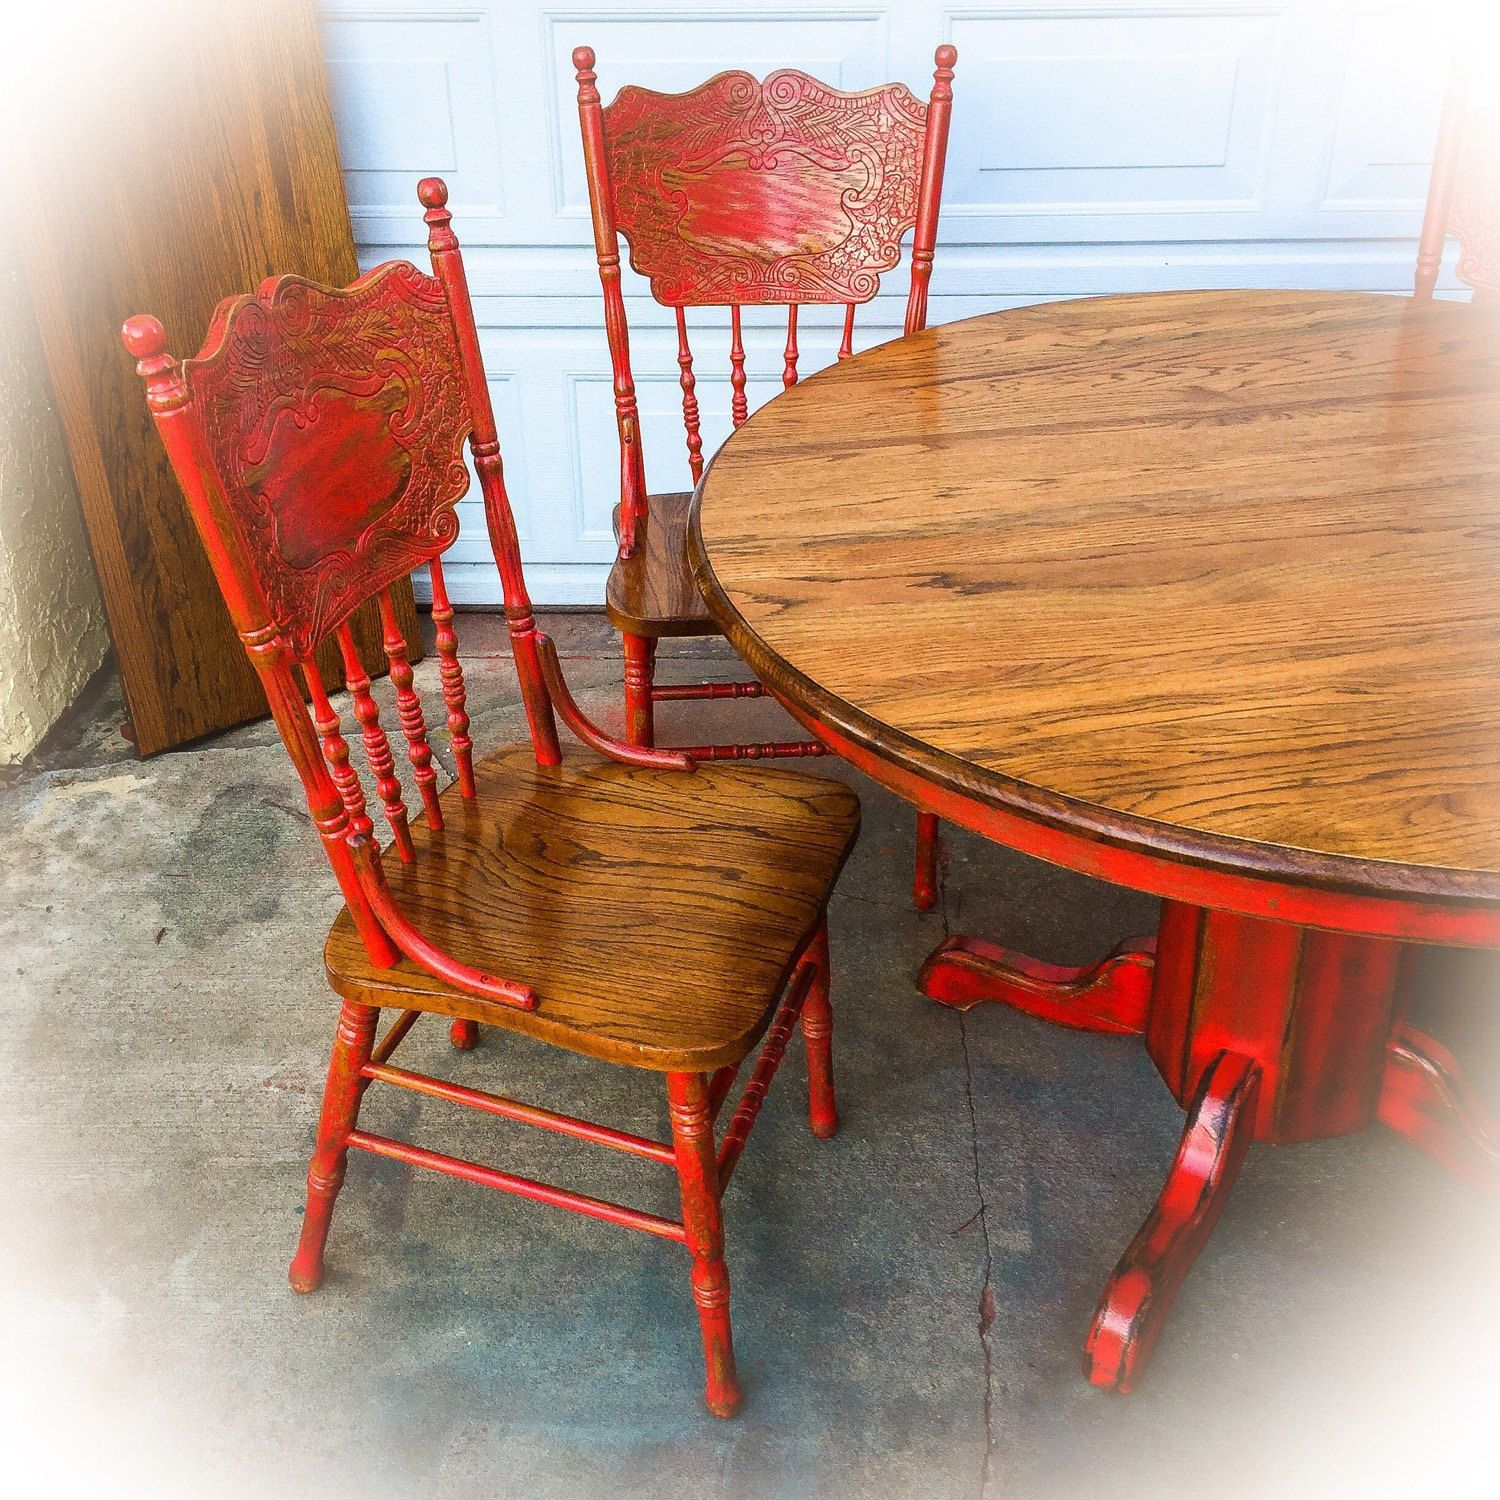 Red Kitchen Table: ️Farmhouse Kitchen Table, From Reincarnated With Love ️